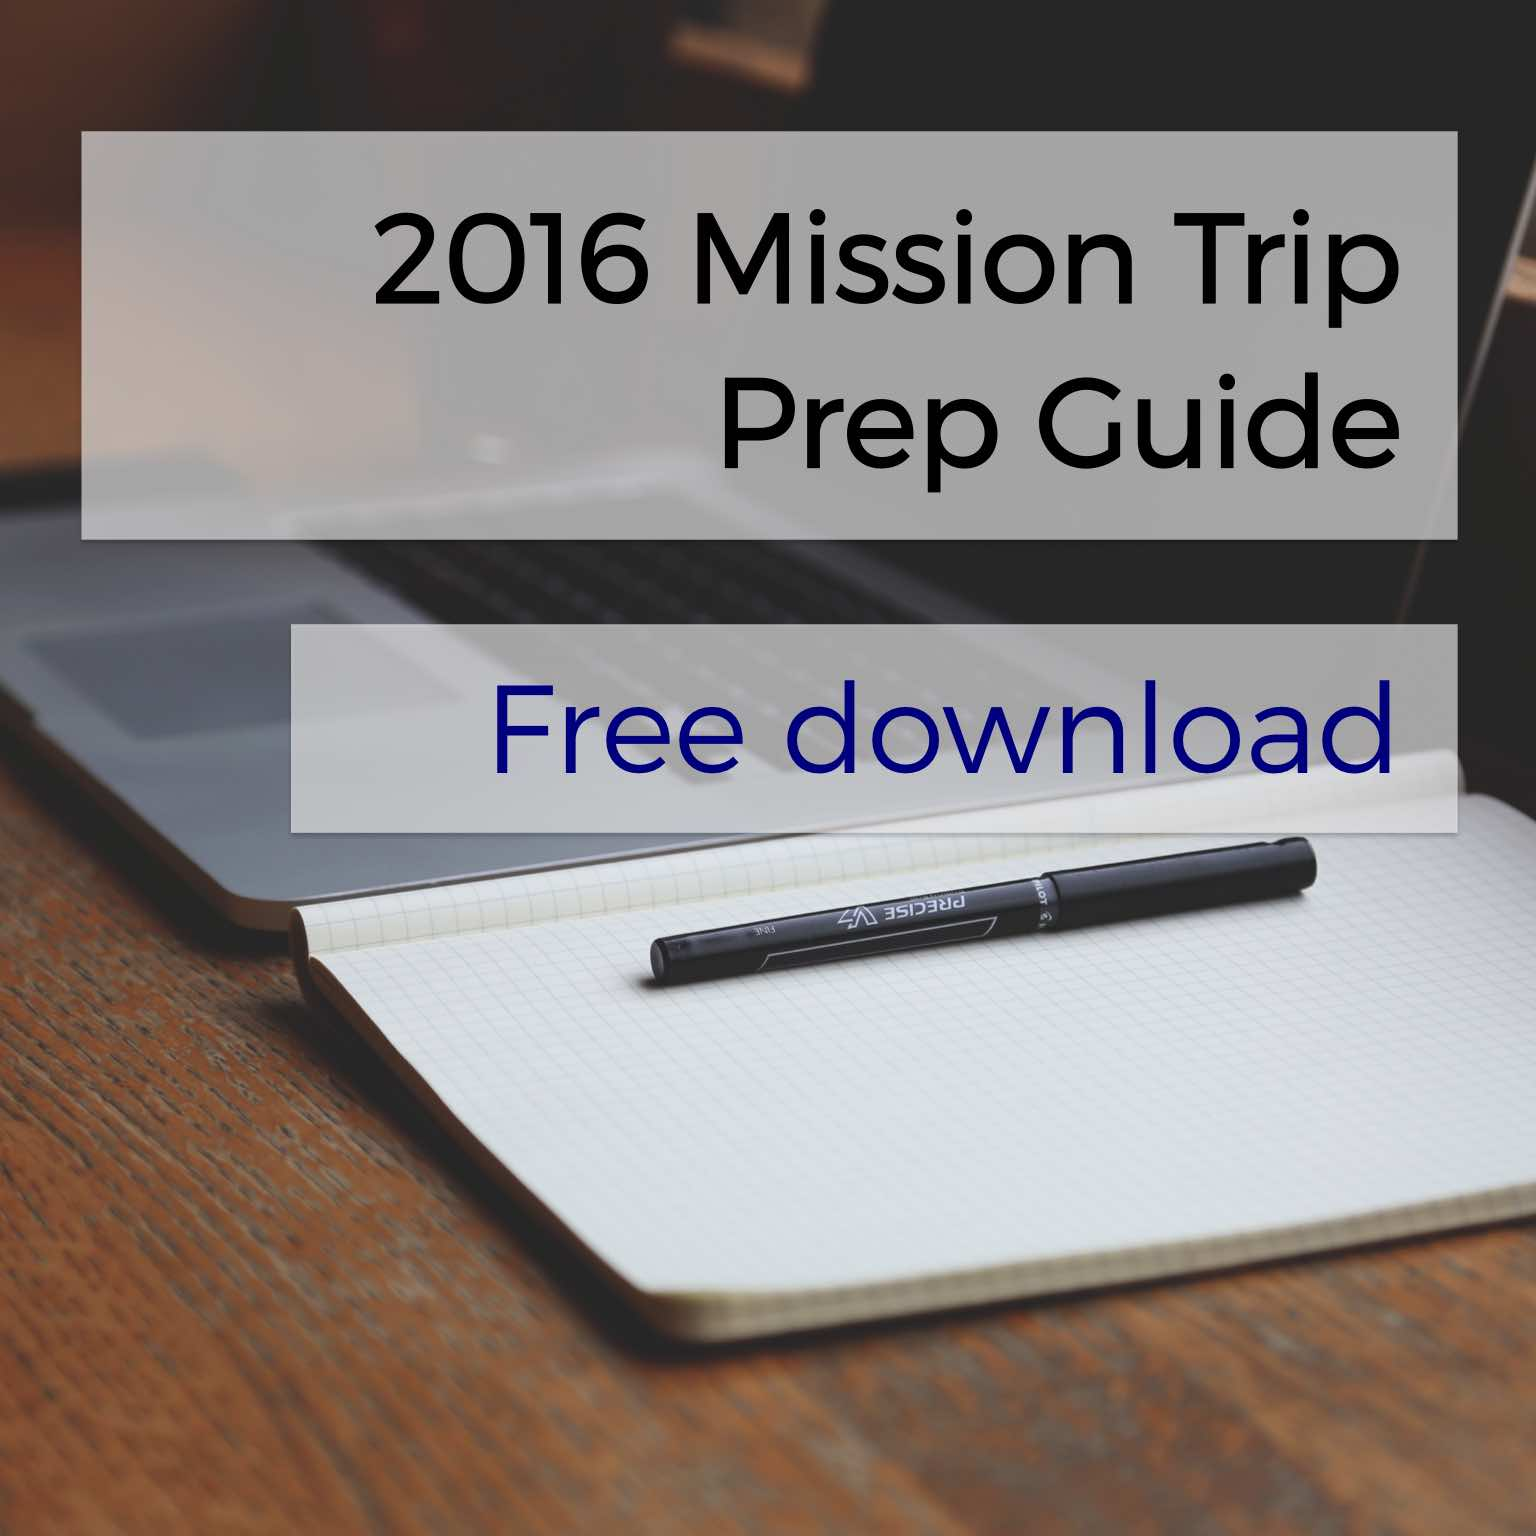 Download the 2016 Mission Trip Prep Guide